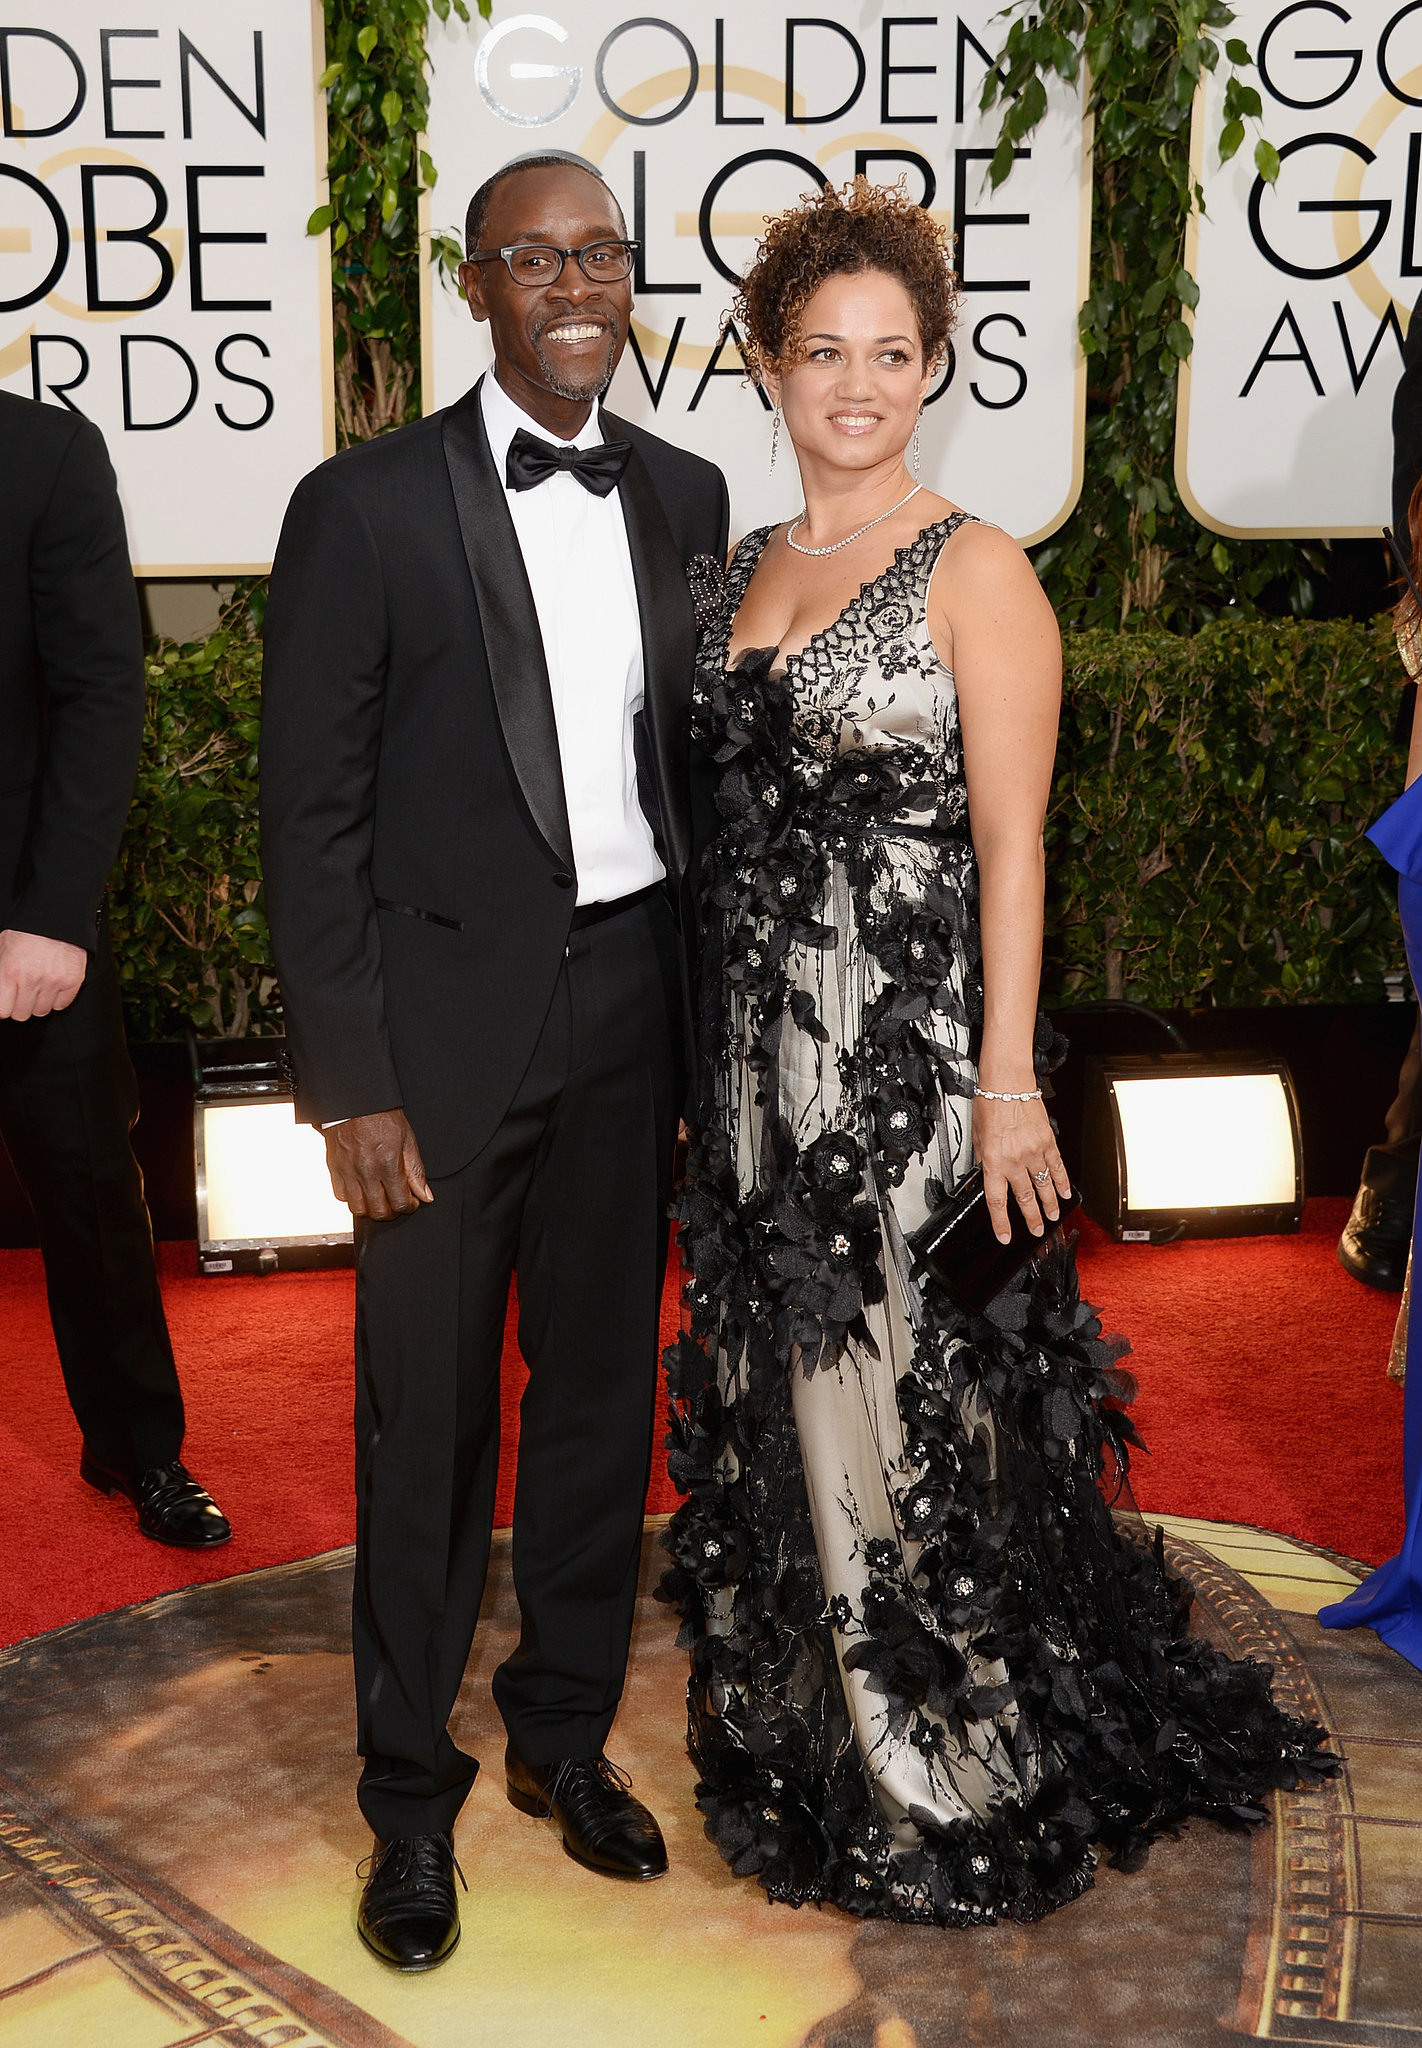 Don Cheadle and Bridgid Coulture arrived at the Golden Globe Awards.